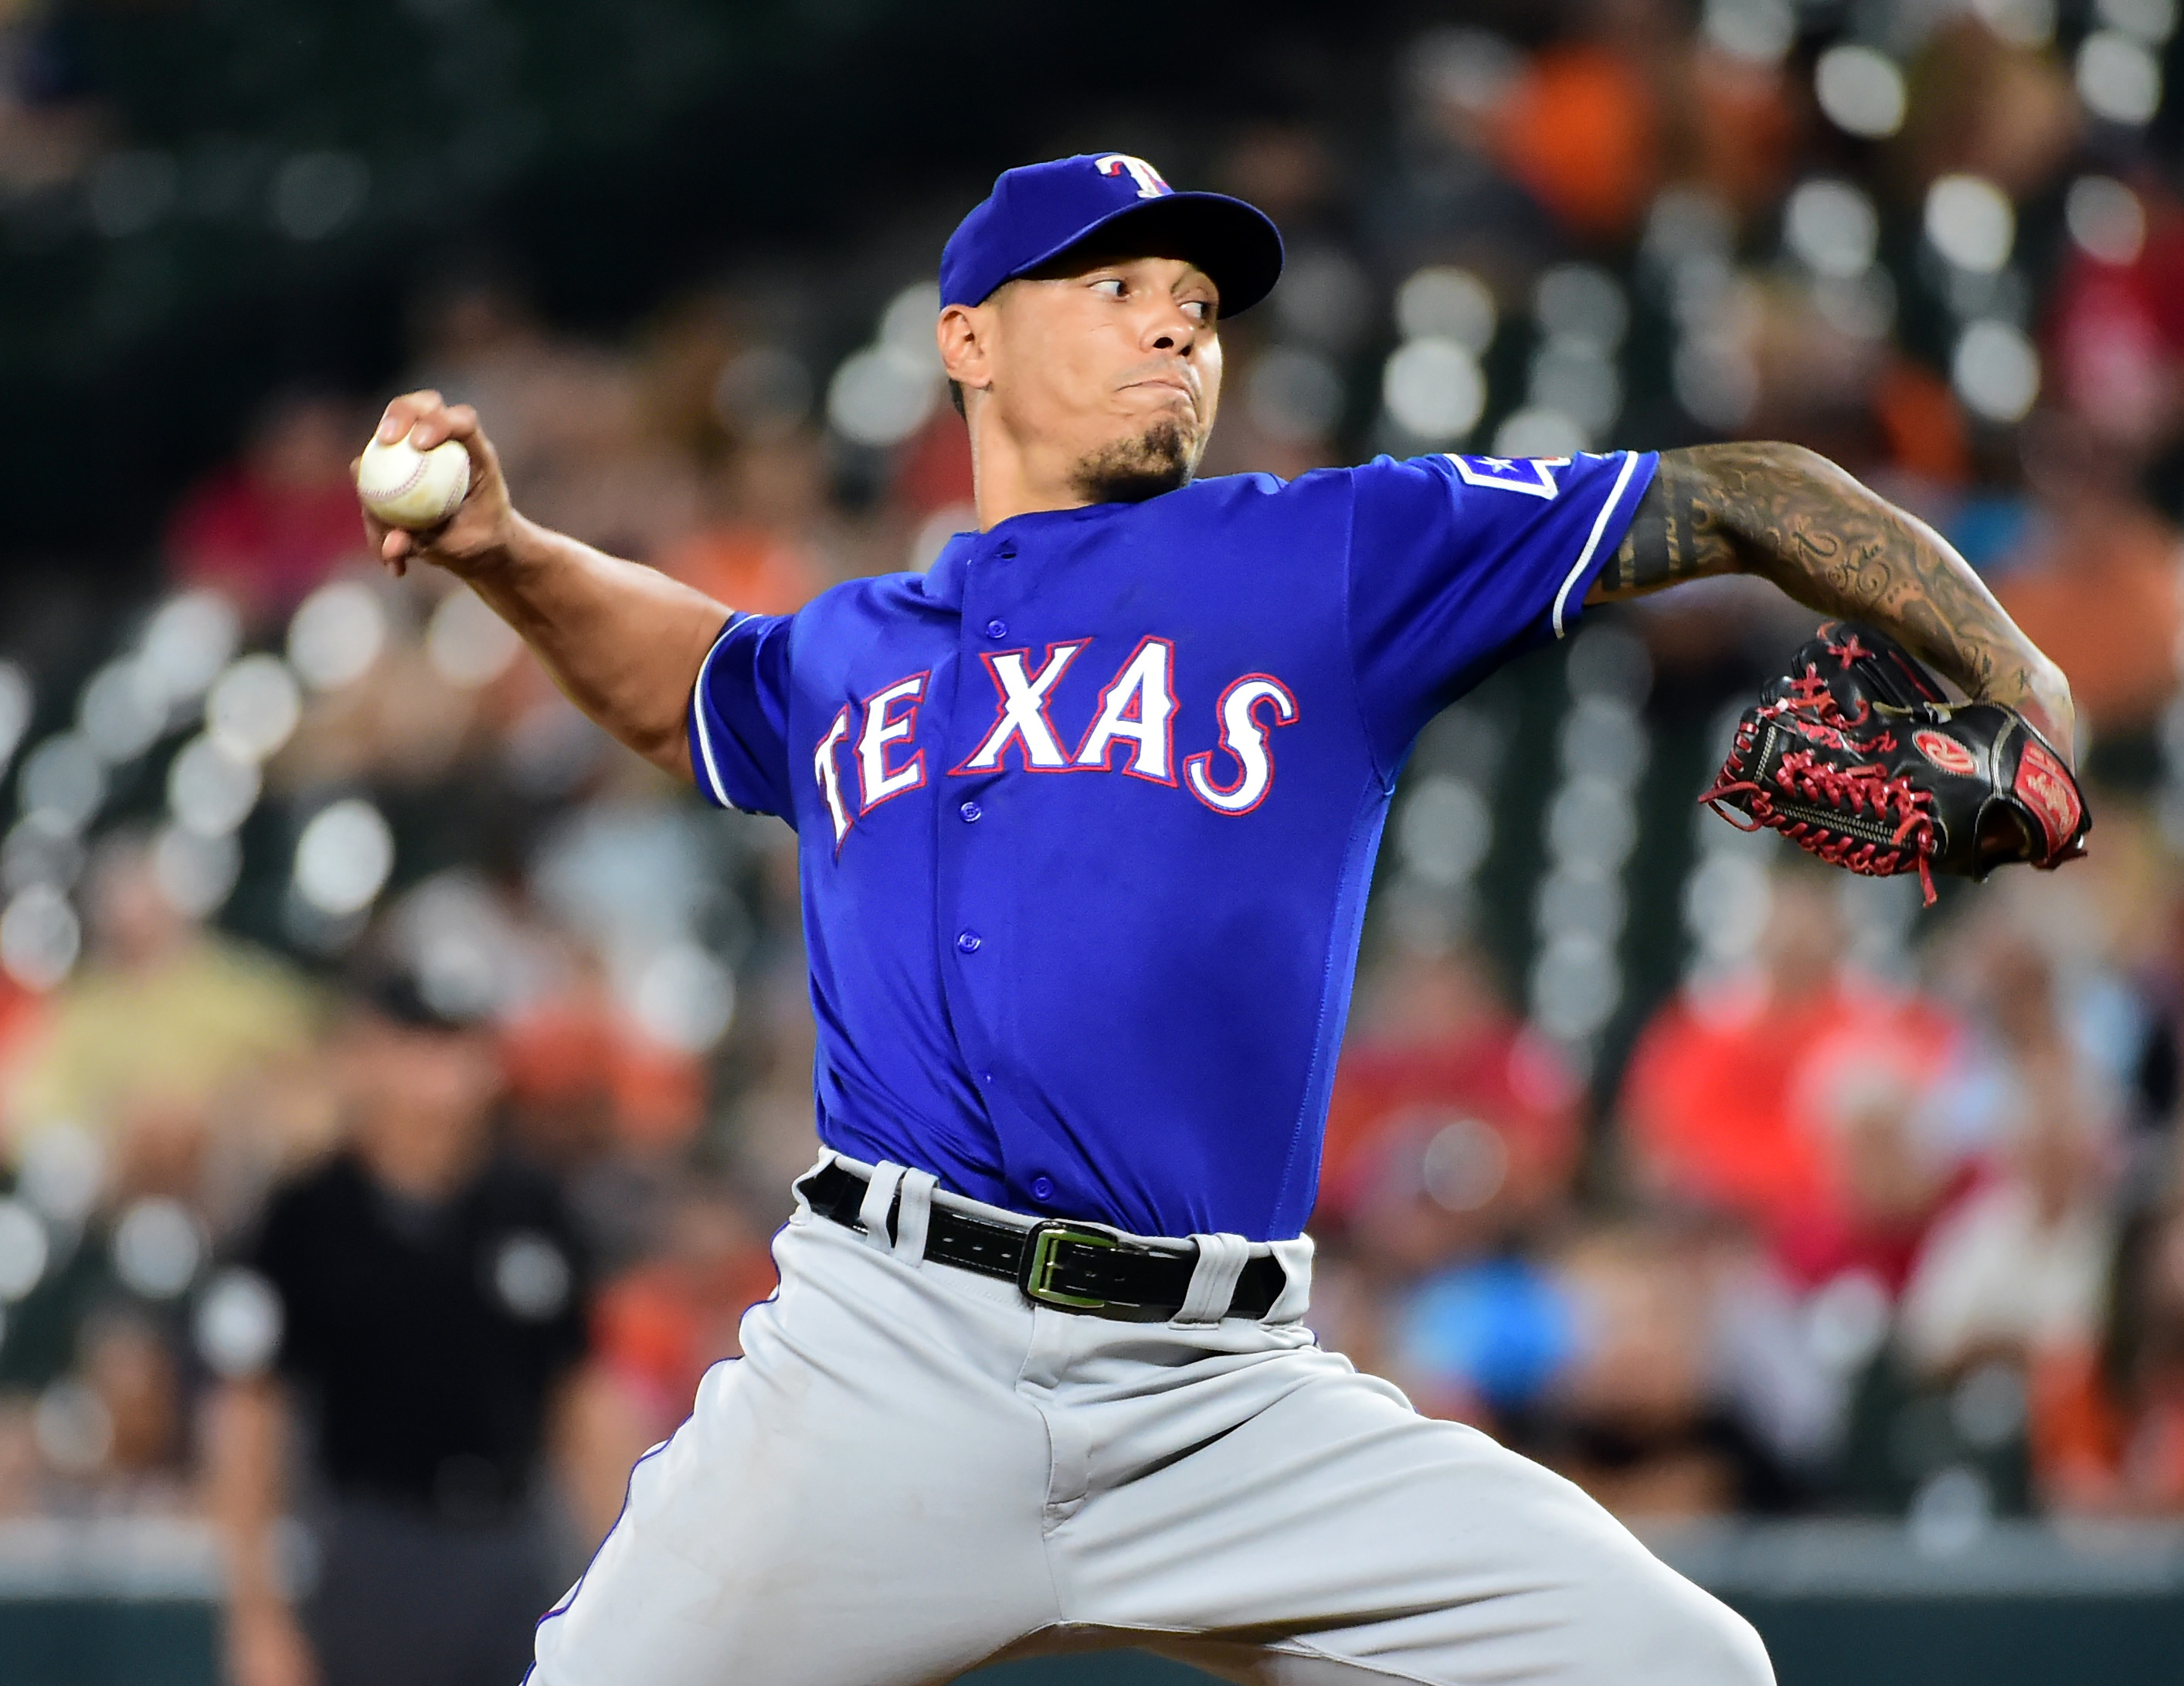 Pirates make bold move acquiring Keone Kela from Rangers